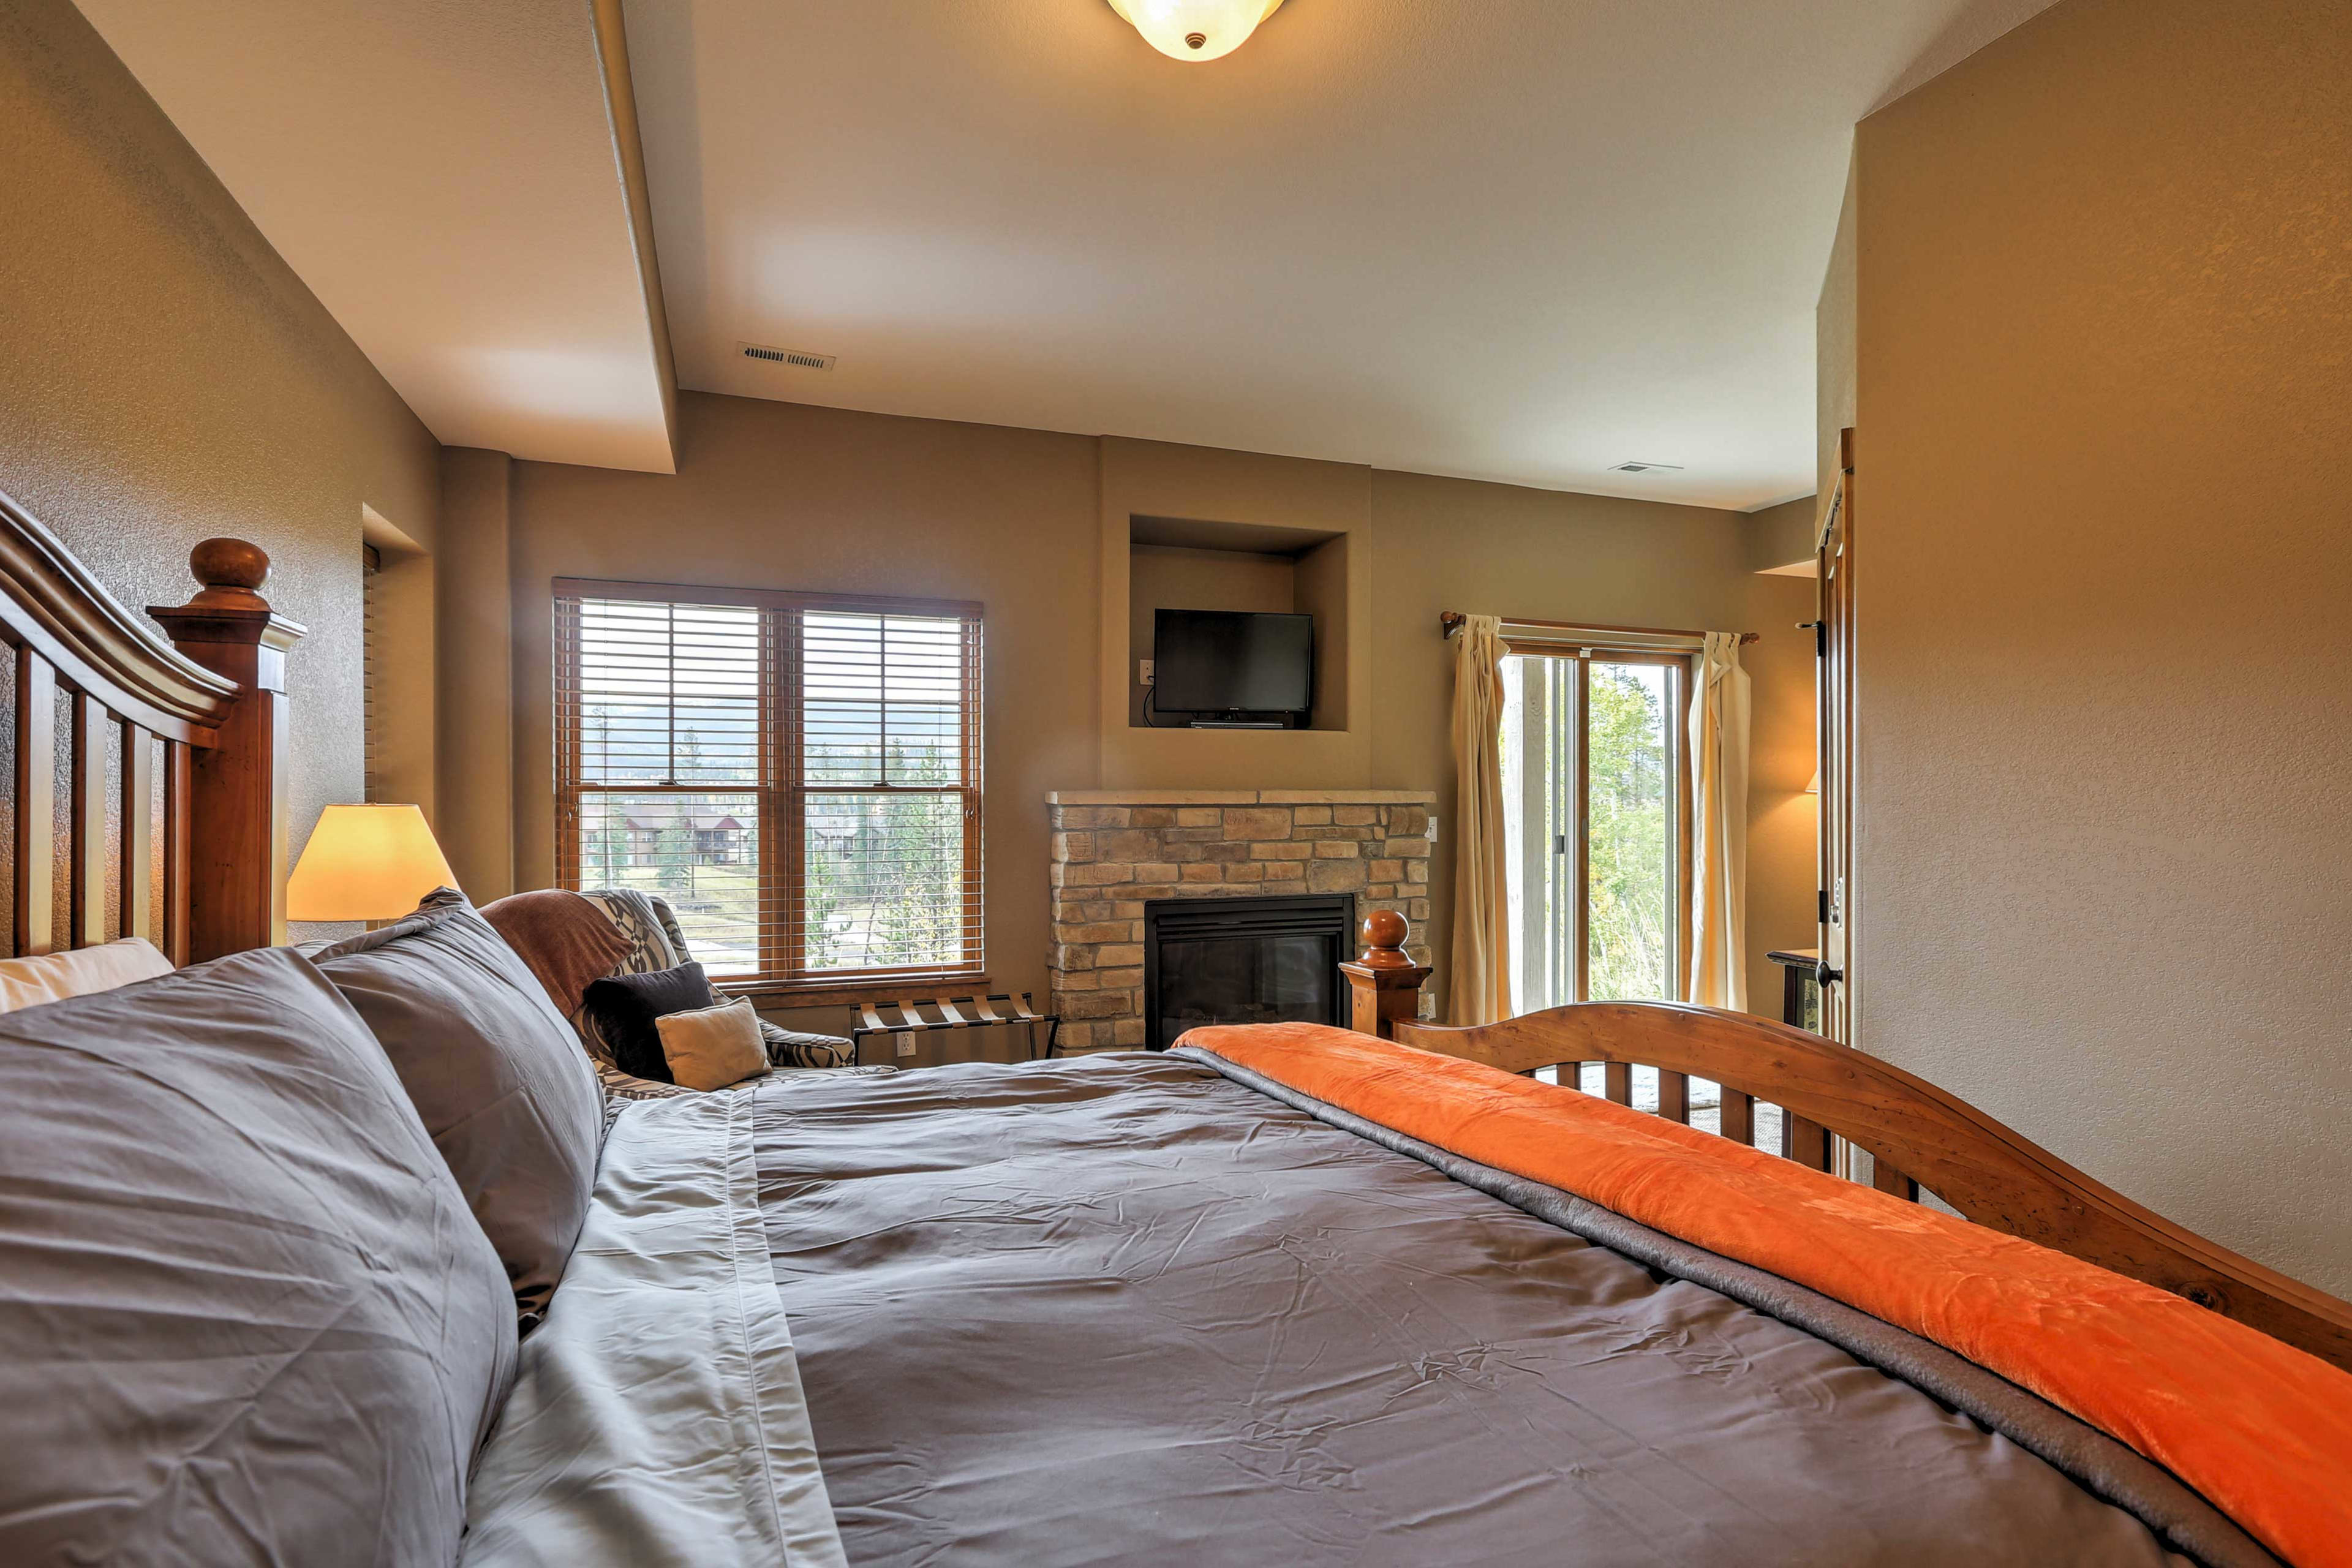 Turn on the gas fireplace or wander out to the balcony in the master bedroom.